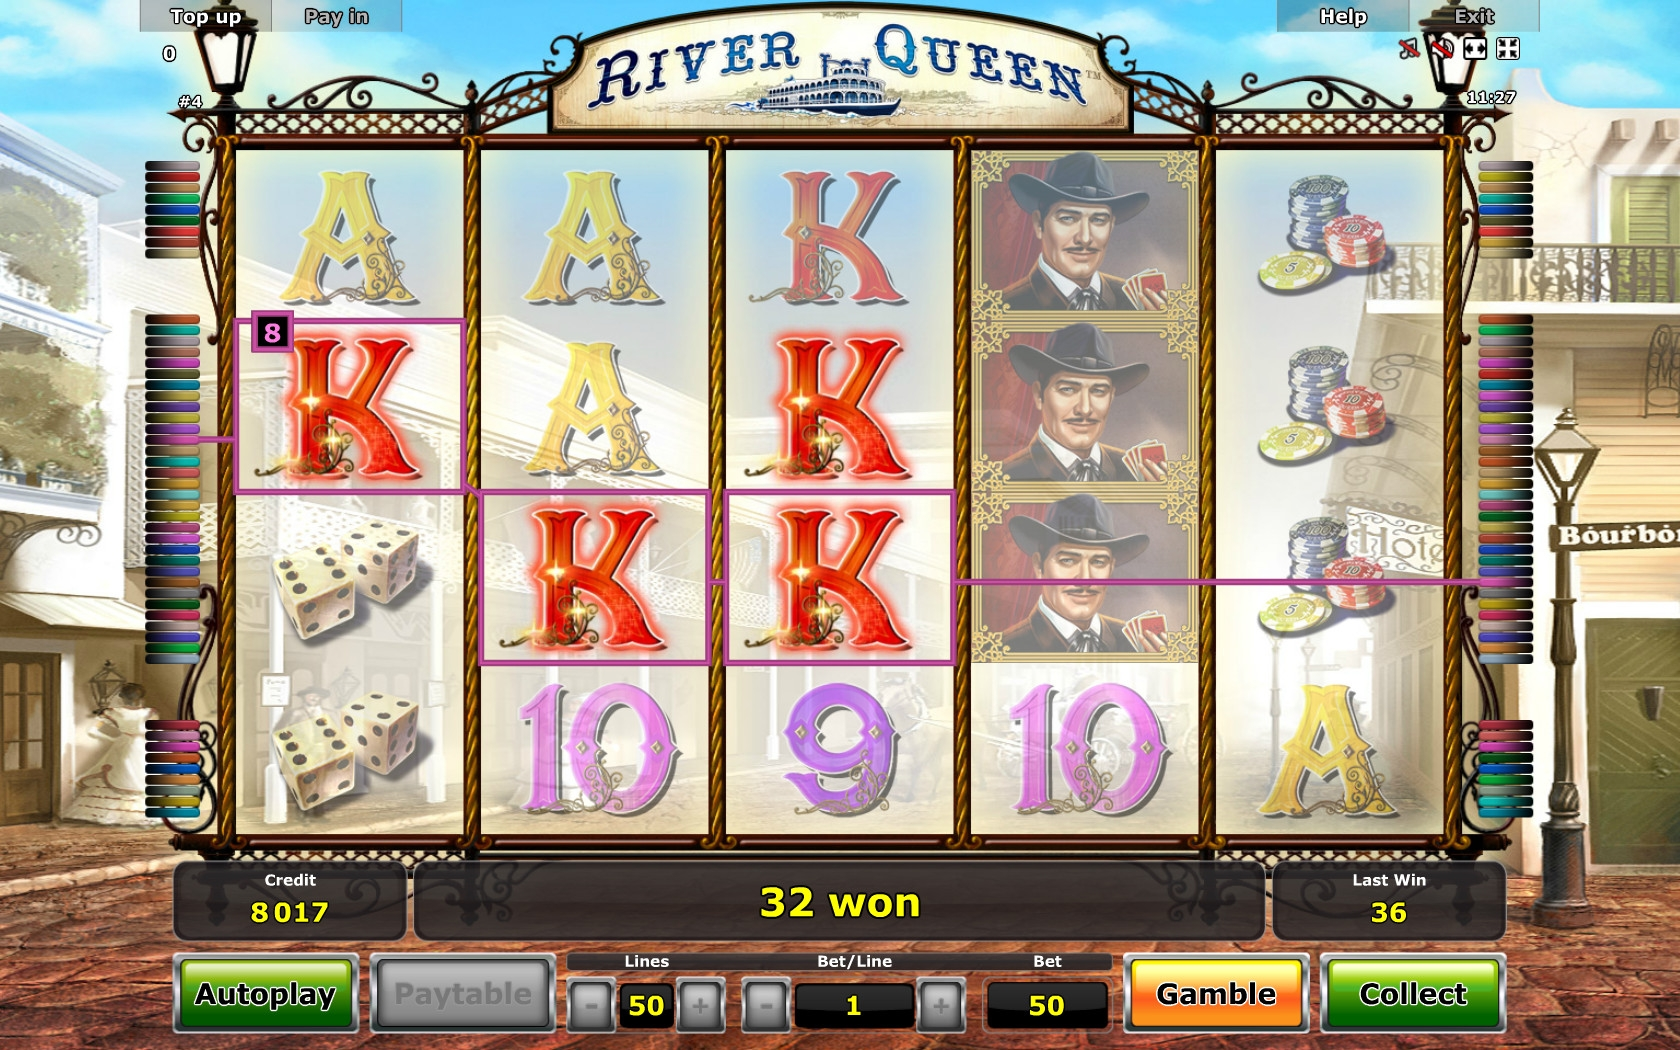 free online casino slots river queen